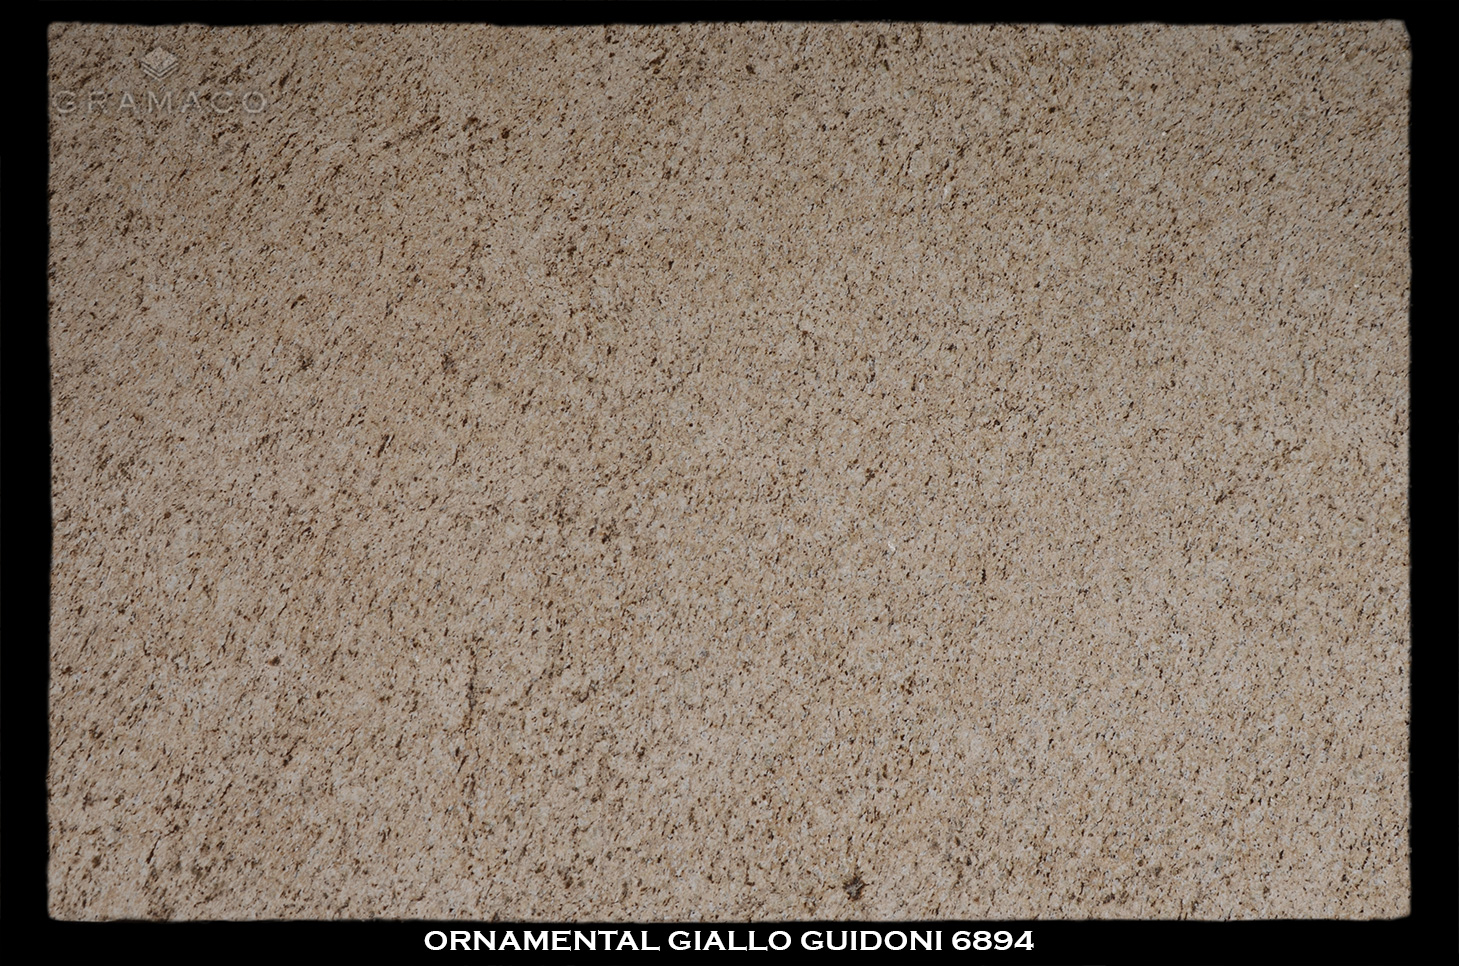 Ornamental-Giallo-Guidoni-6894-slab